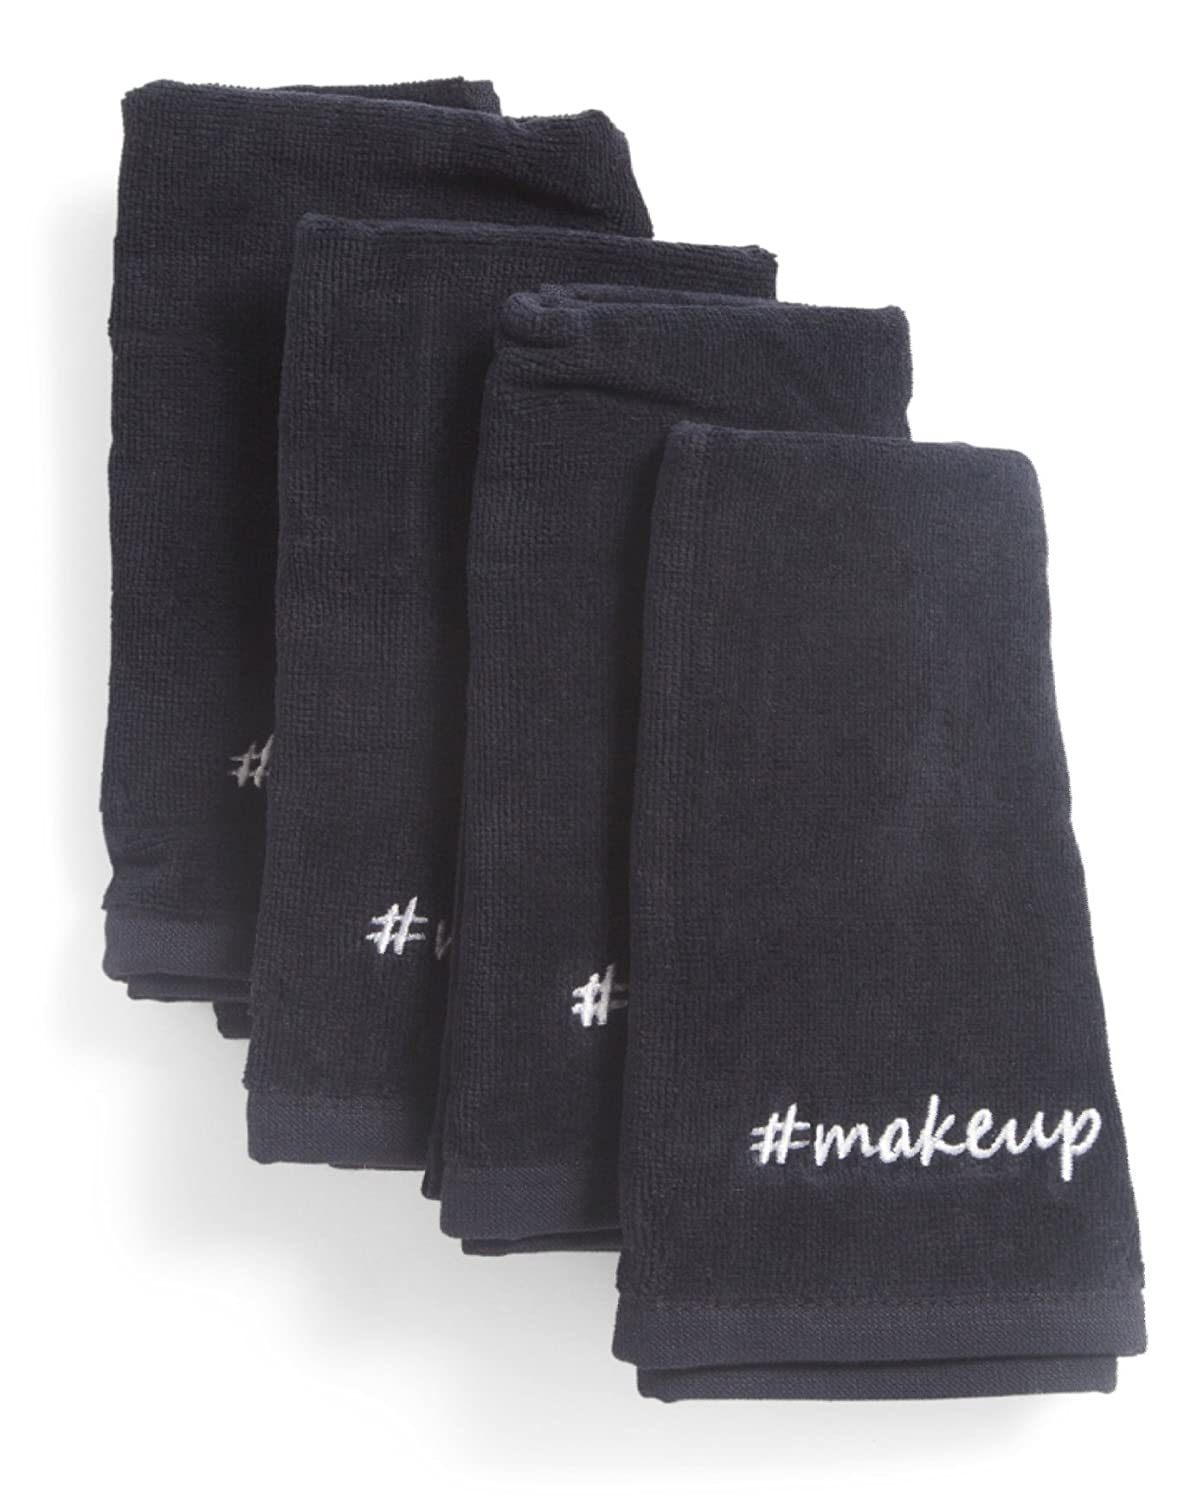 Cynthia Rowley Black Makeup Towels Soft Absorbent Cotton Cleansing Washcloth (Set of 4)